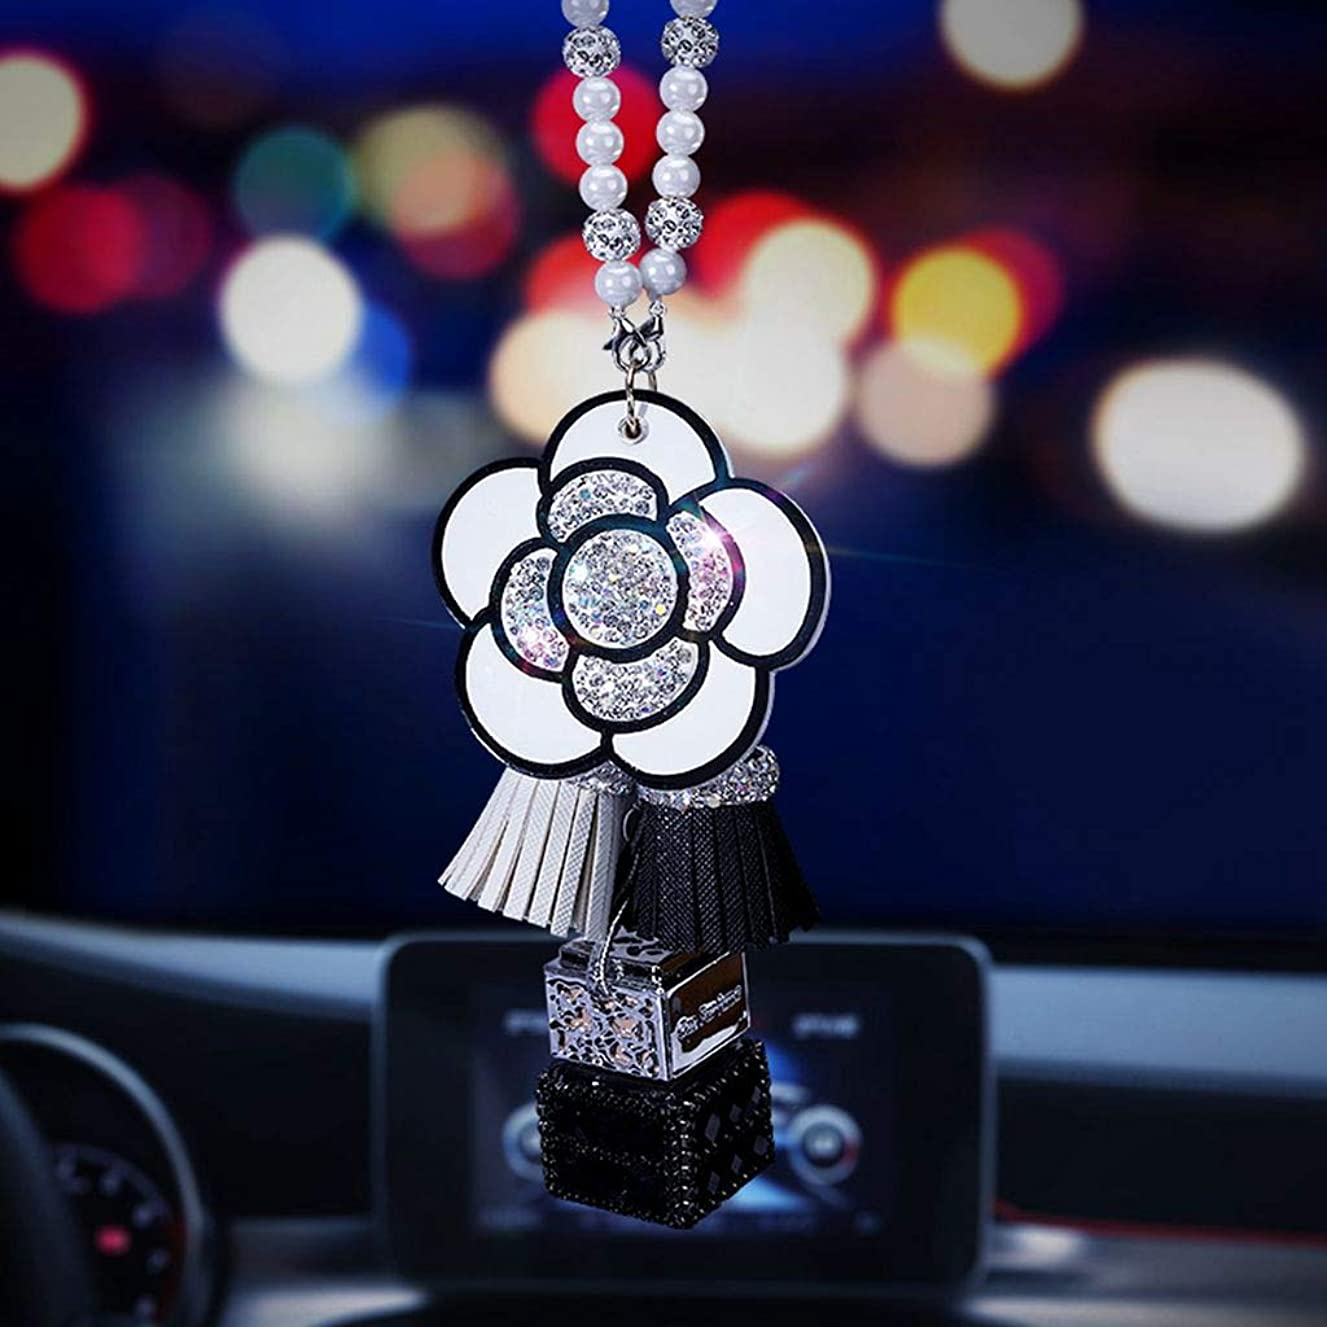 BabYoung Diamond Bling Crystal Car Pendant Rear View Mirror Ornament Accessories Camellia Perfume Hanging Decor for Car or Home (White)